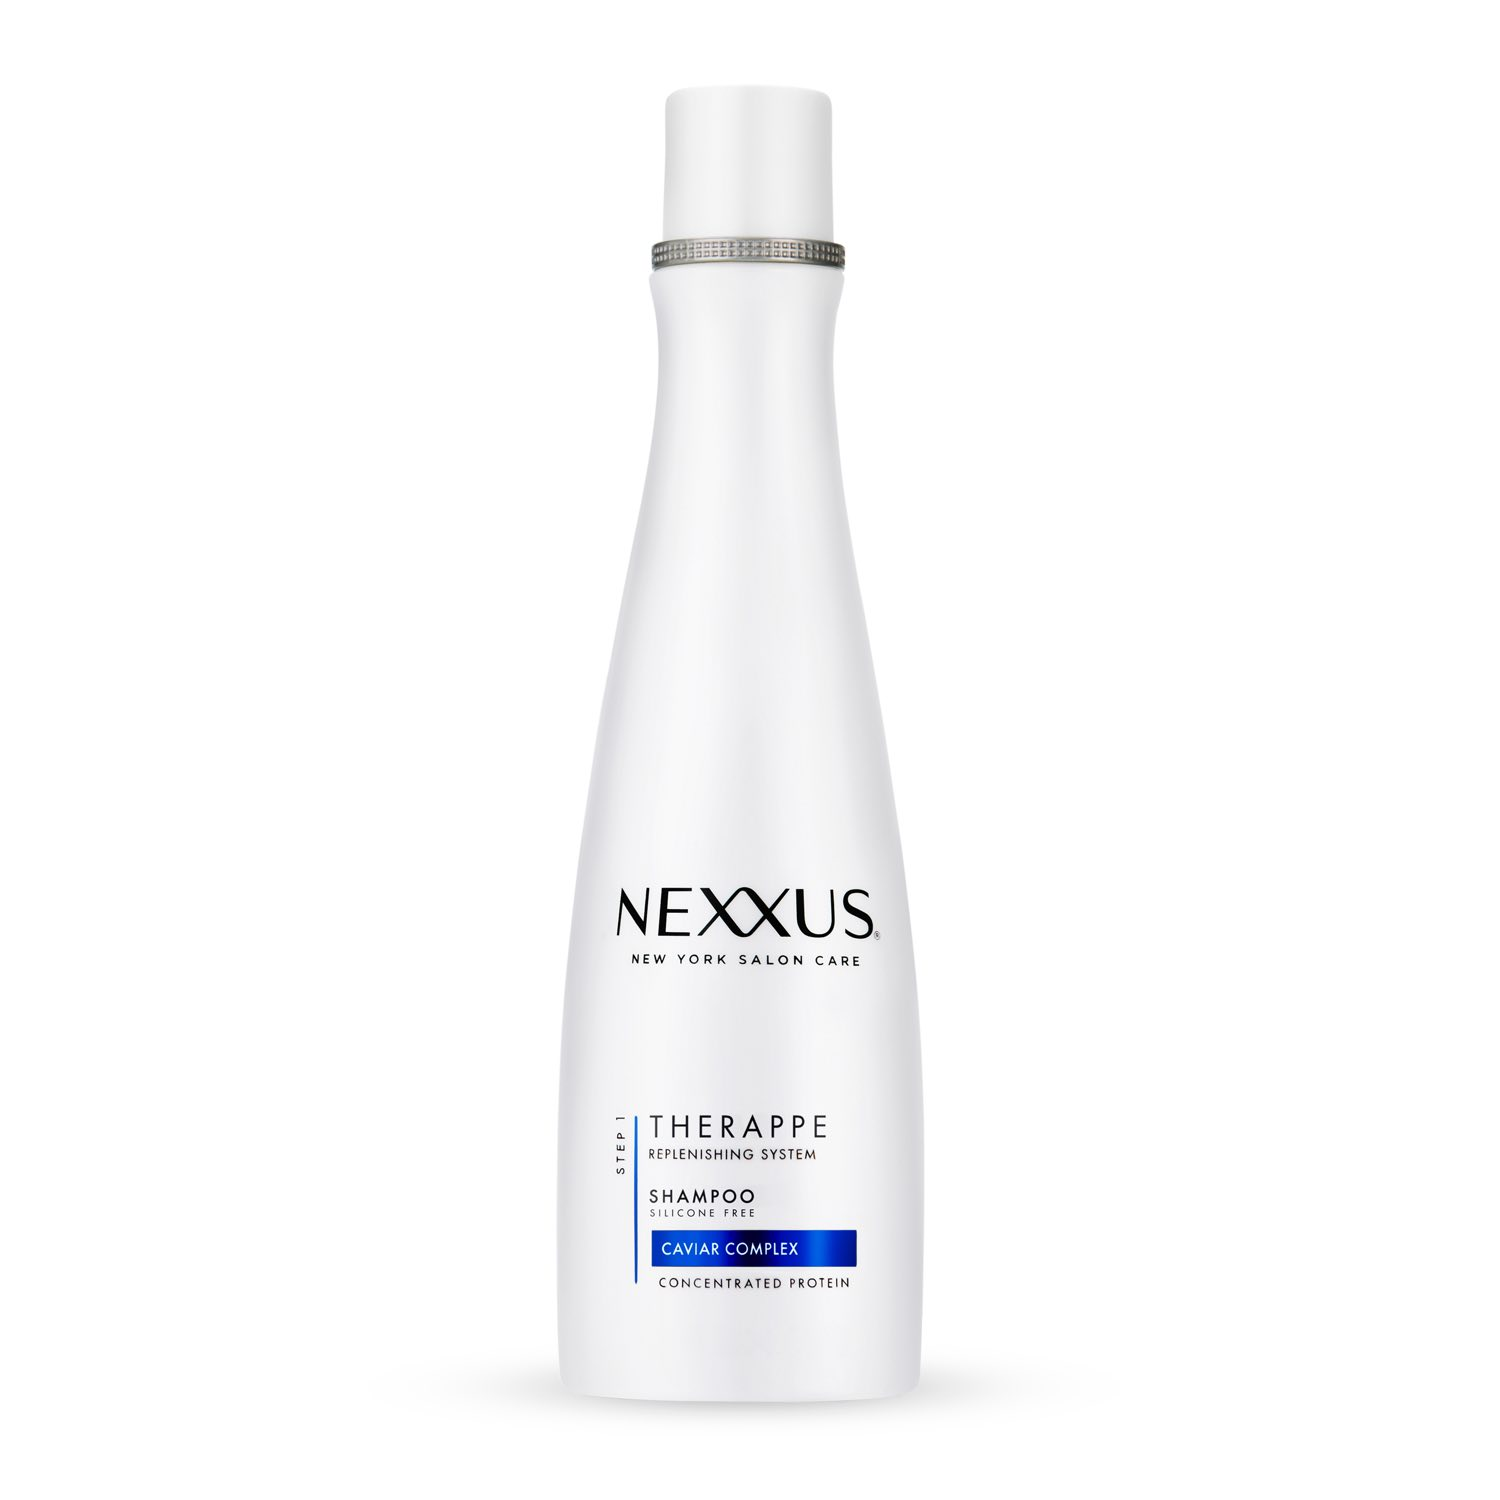 NEXXUS® Therappe Ultimate Moisture Shampoo for Normal to Dry Hair